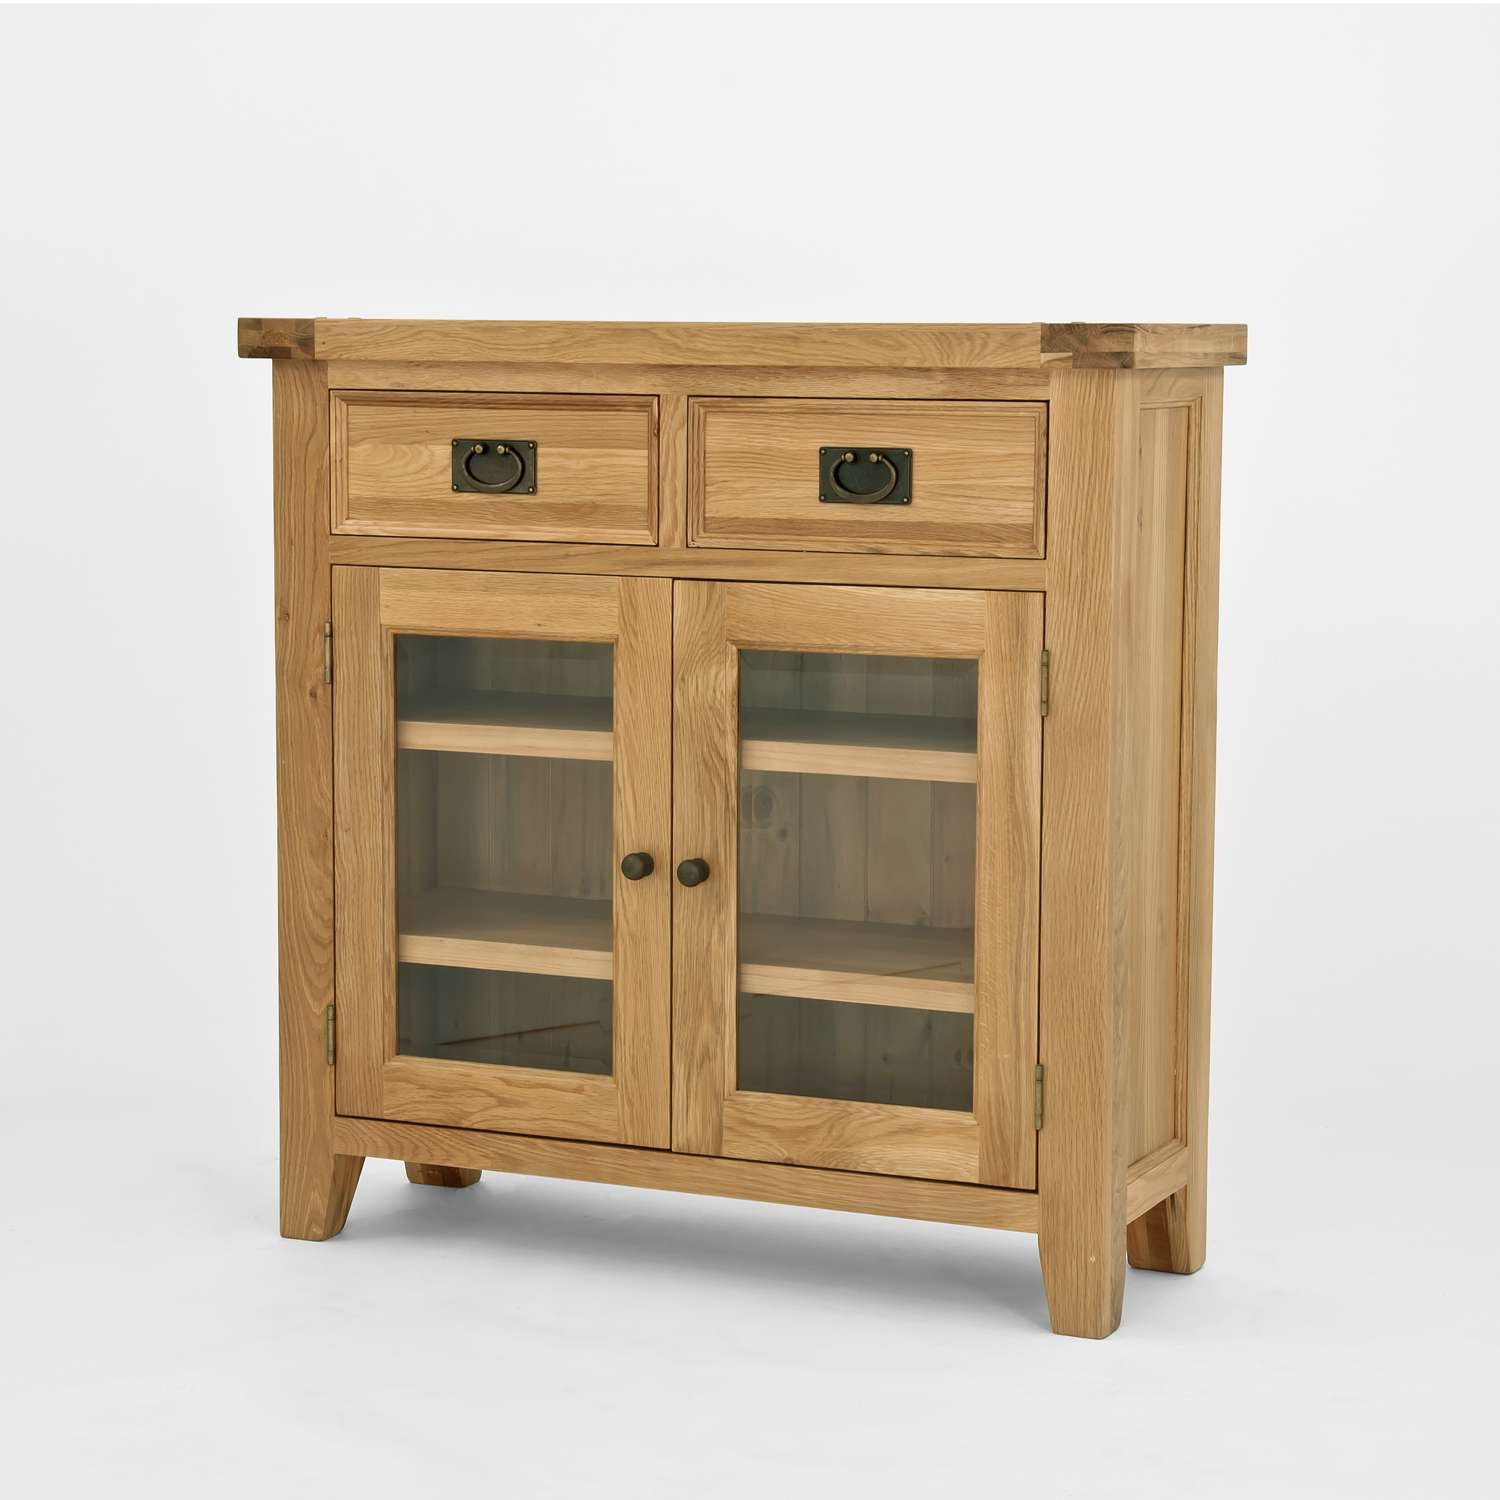 Chiltern Oak Small Sideboard/bookcase With Glass Doors Throughout Sideboards With Drawers (View 16 of 20)